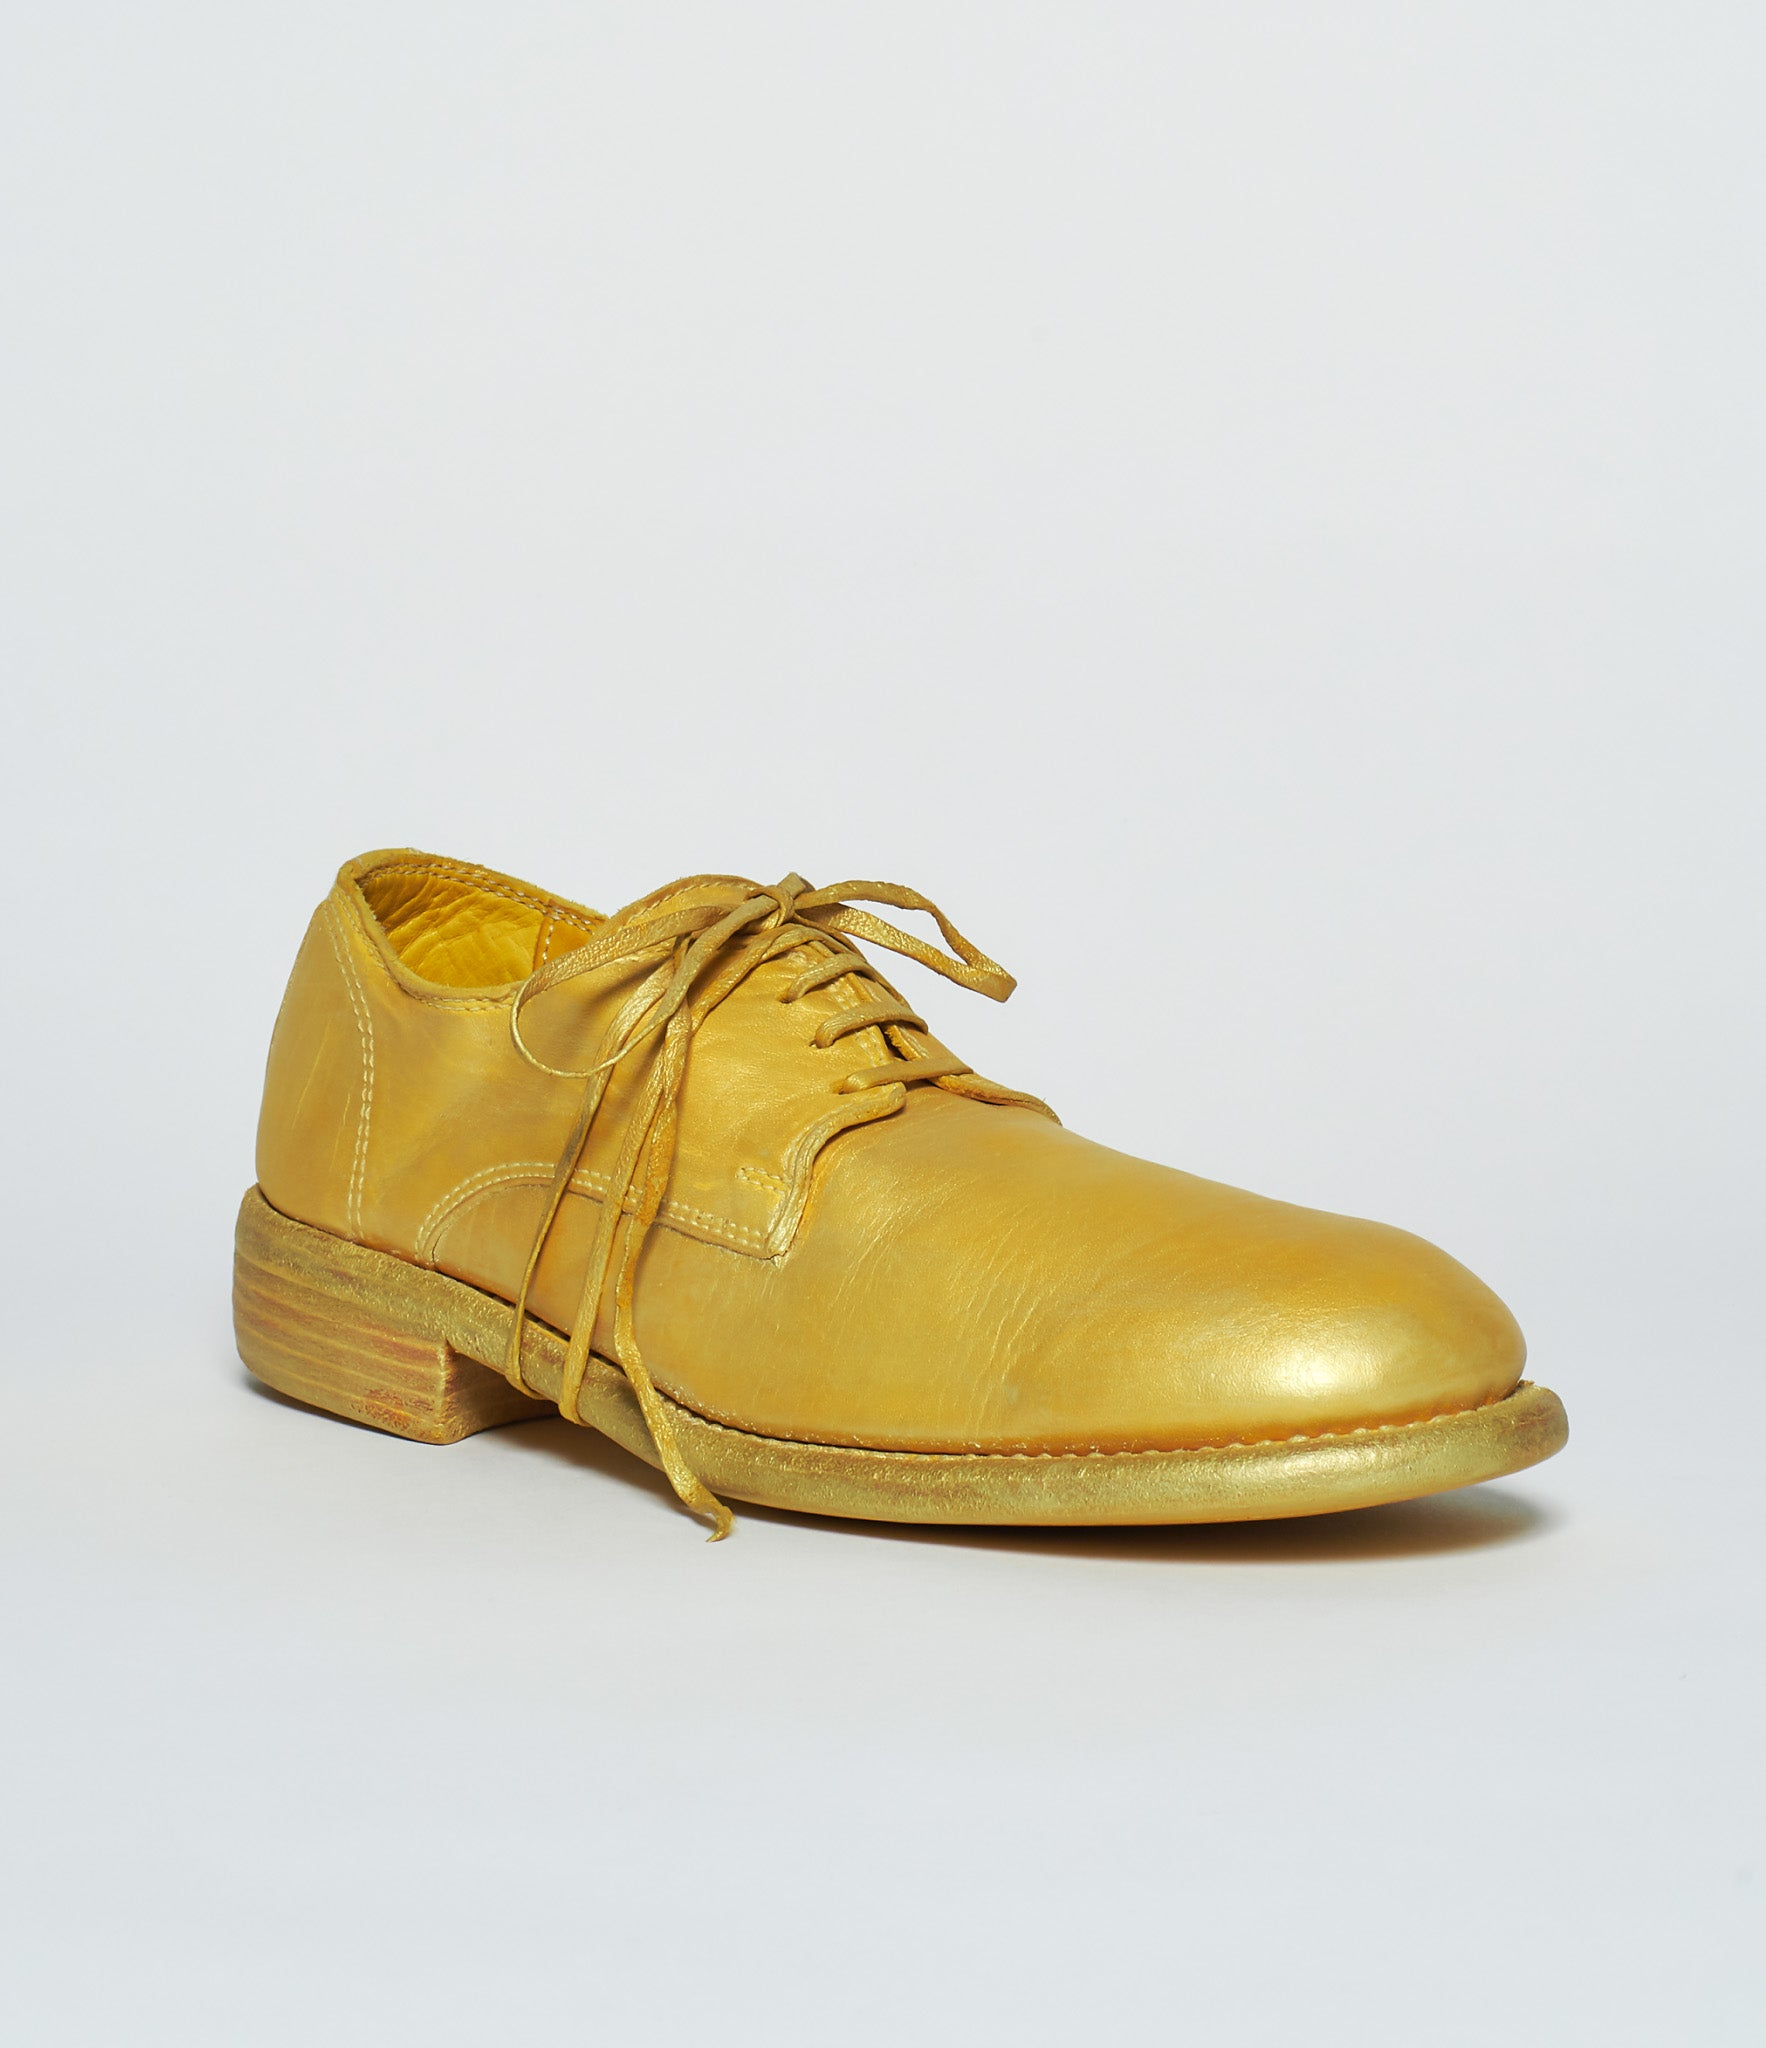 Guidi 992 IF SoHo Exclusive Gold Soft Horse Full Grain Derby